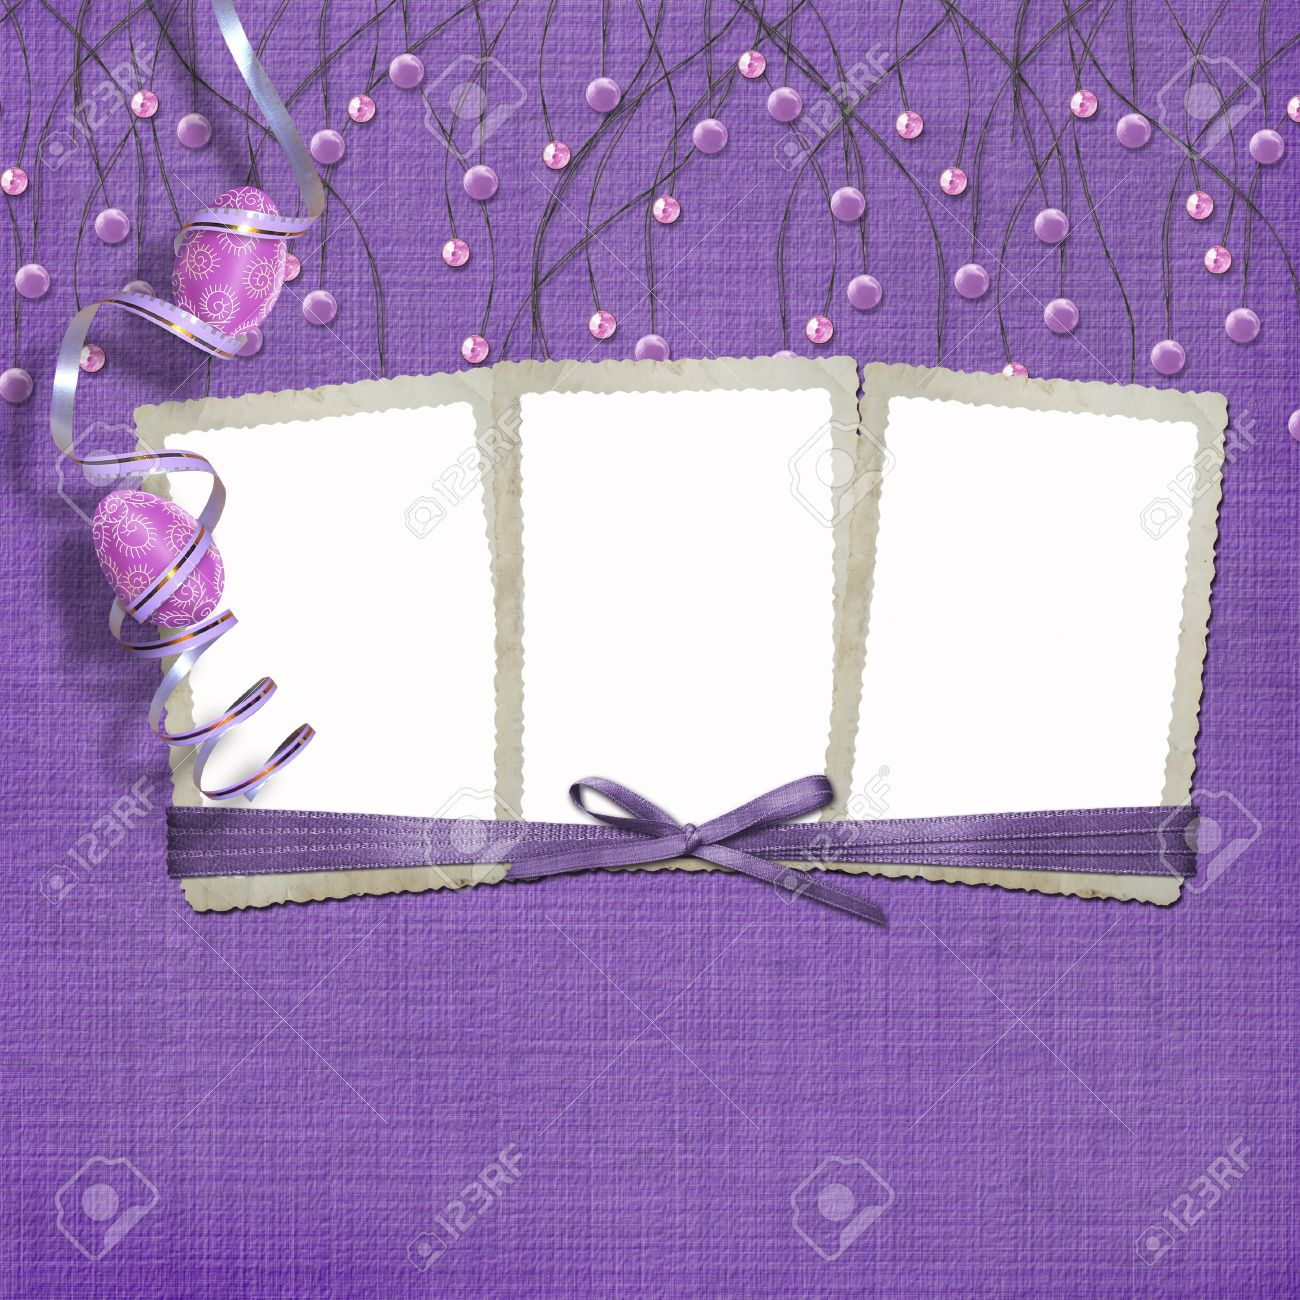 Easter Three Frames With Paint Eggs And Purple Beads Stock Photo ...